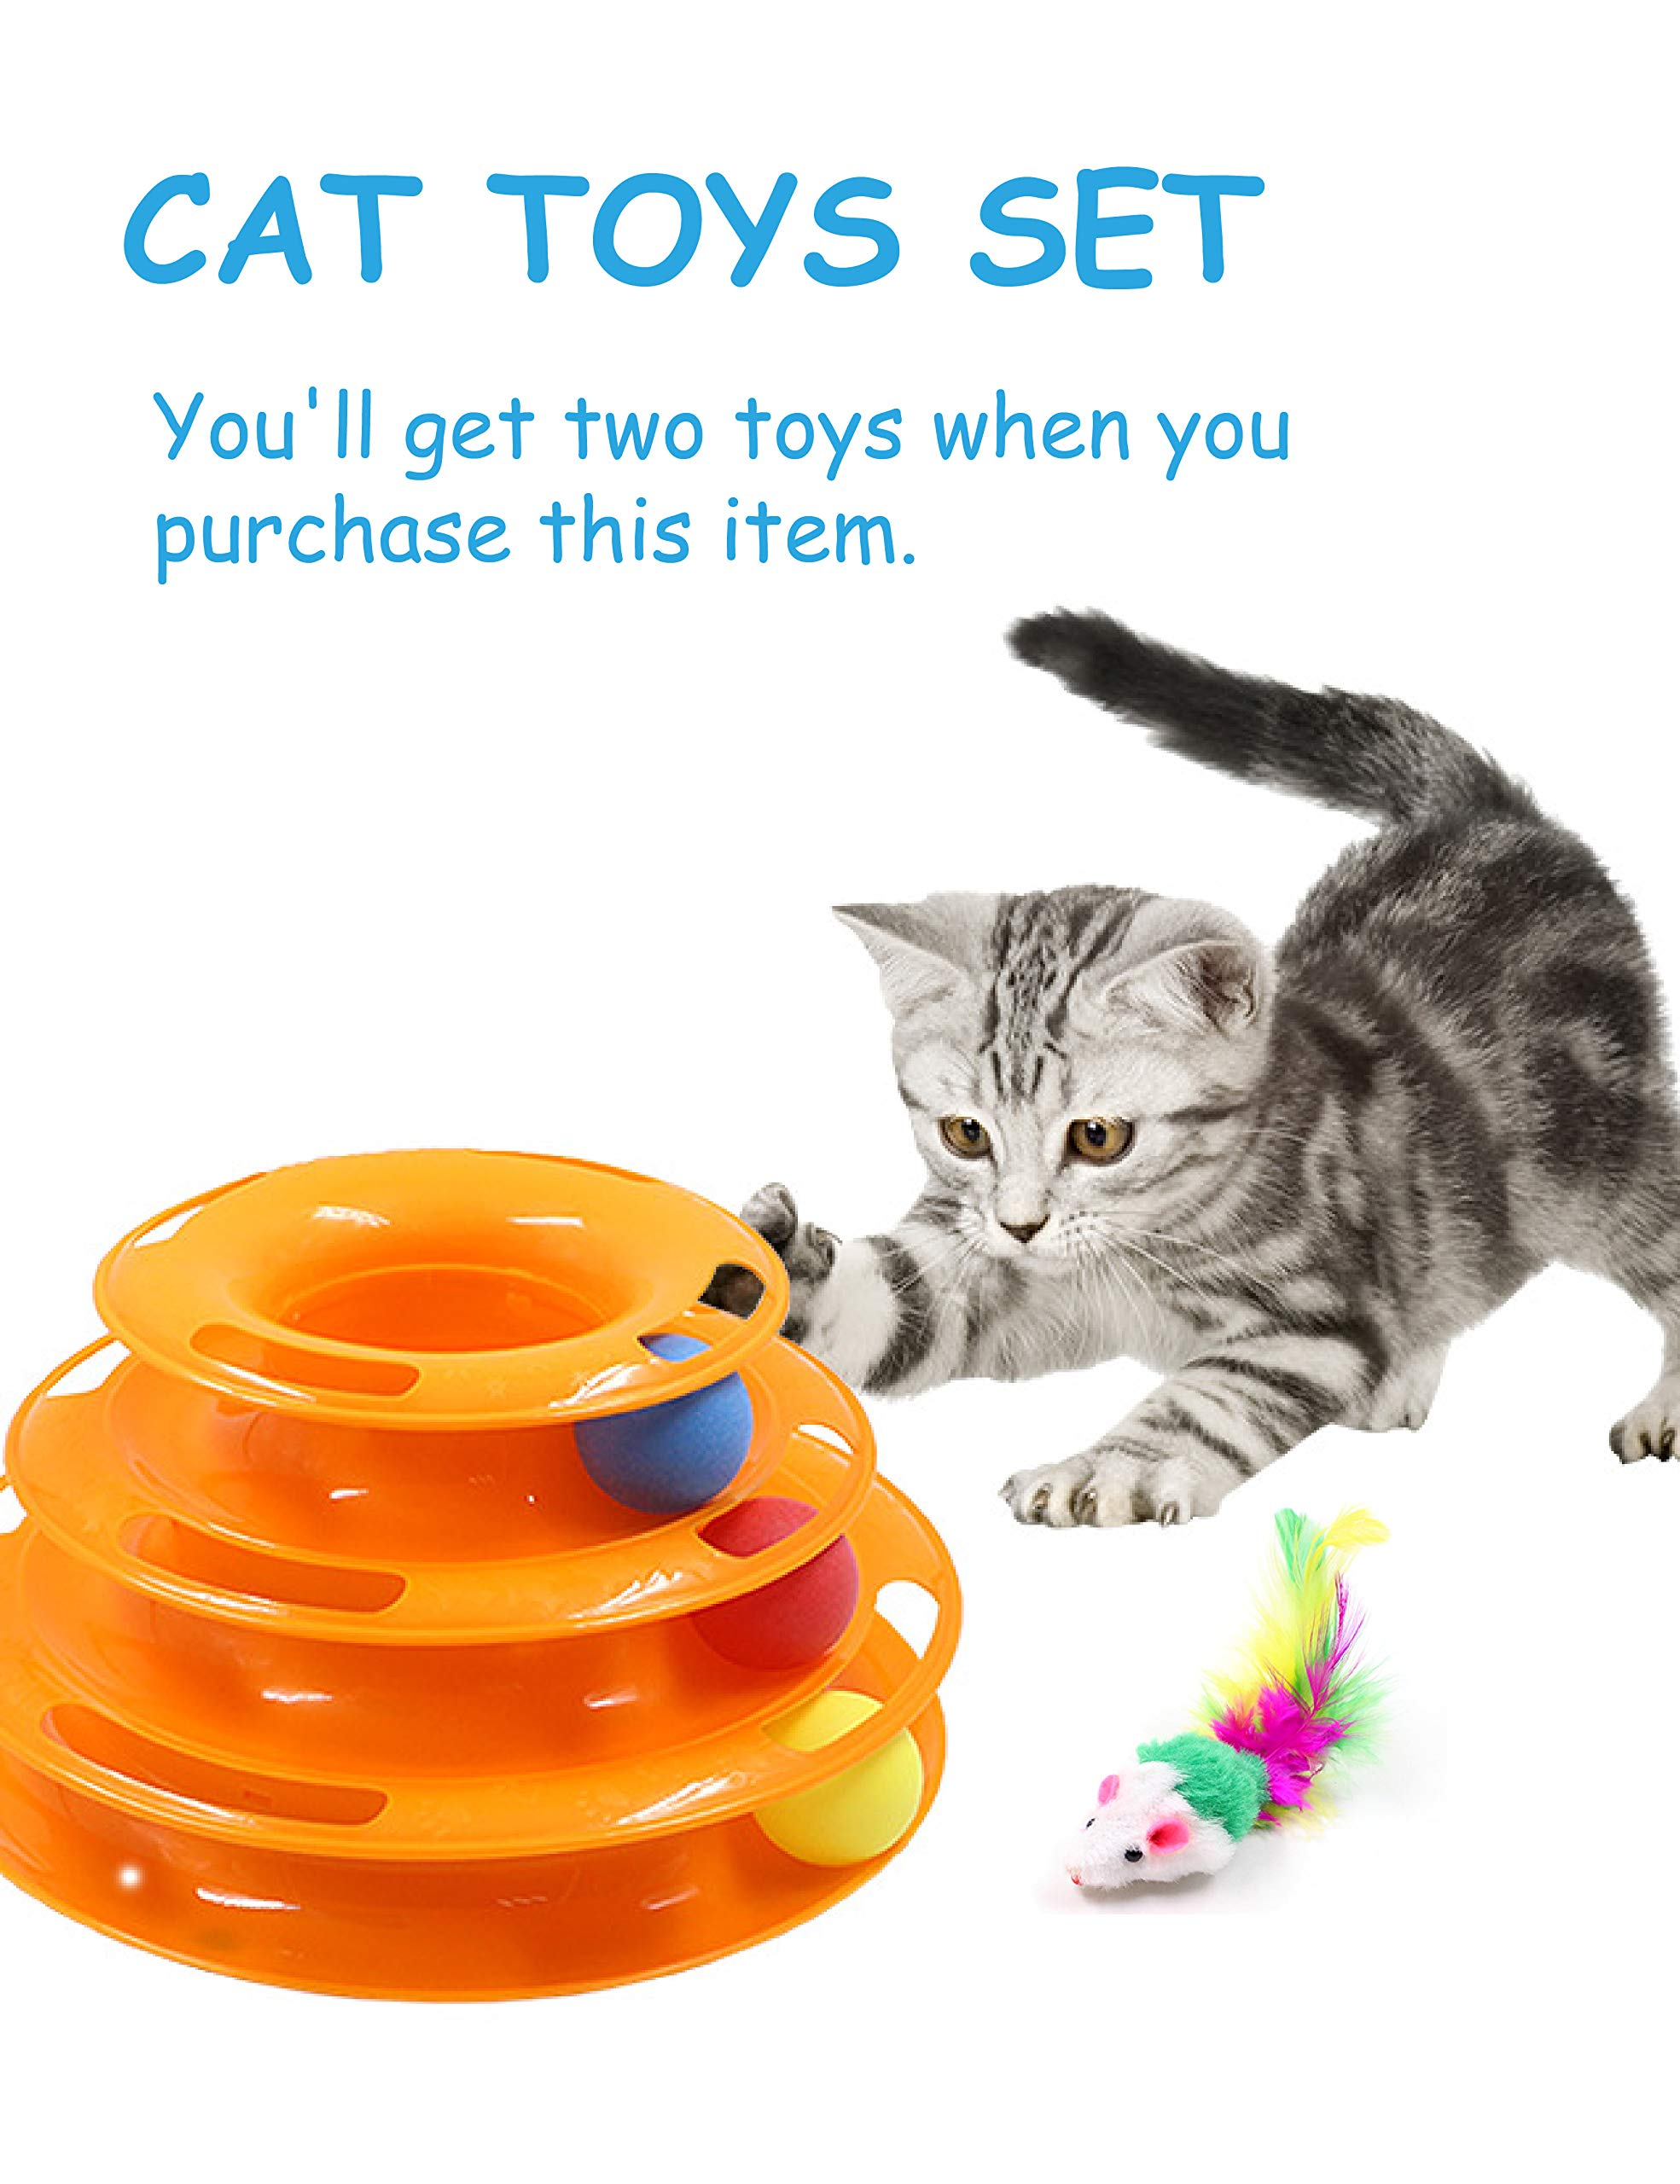 Petove Cat Toys Tower of Tracks 3 Level Cat Tracks Interactive Ball Toy and Feather Fluffy Mouse Toy Set for Cat, Kitten (Orange) by Petove (Image #6)